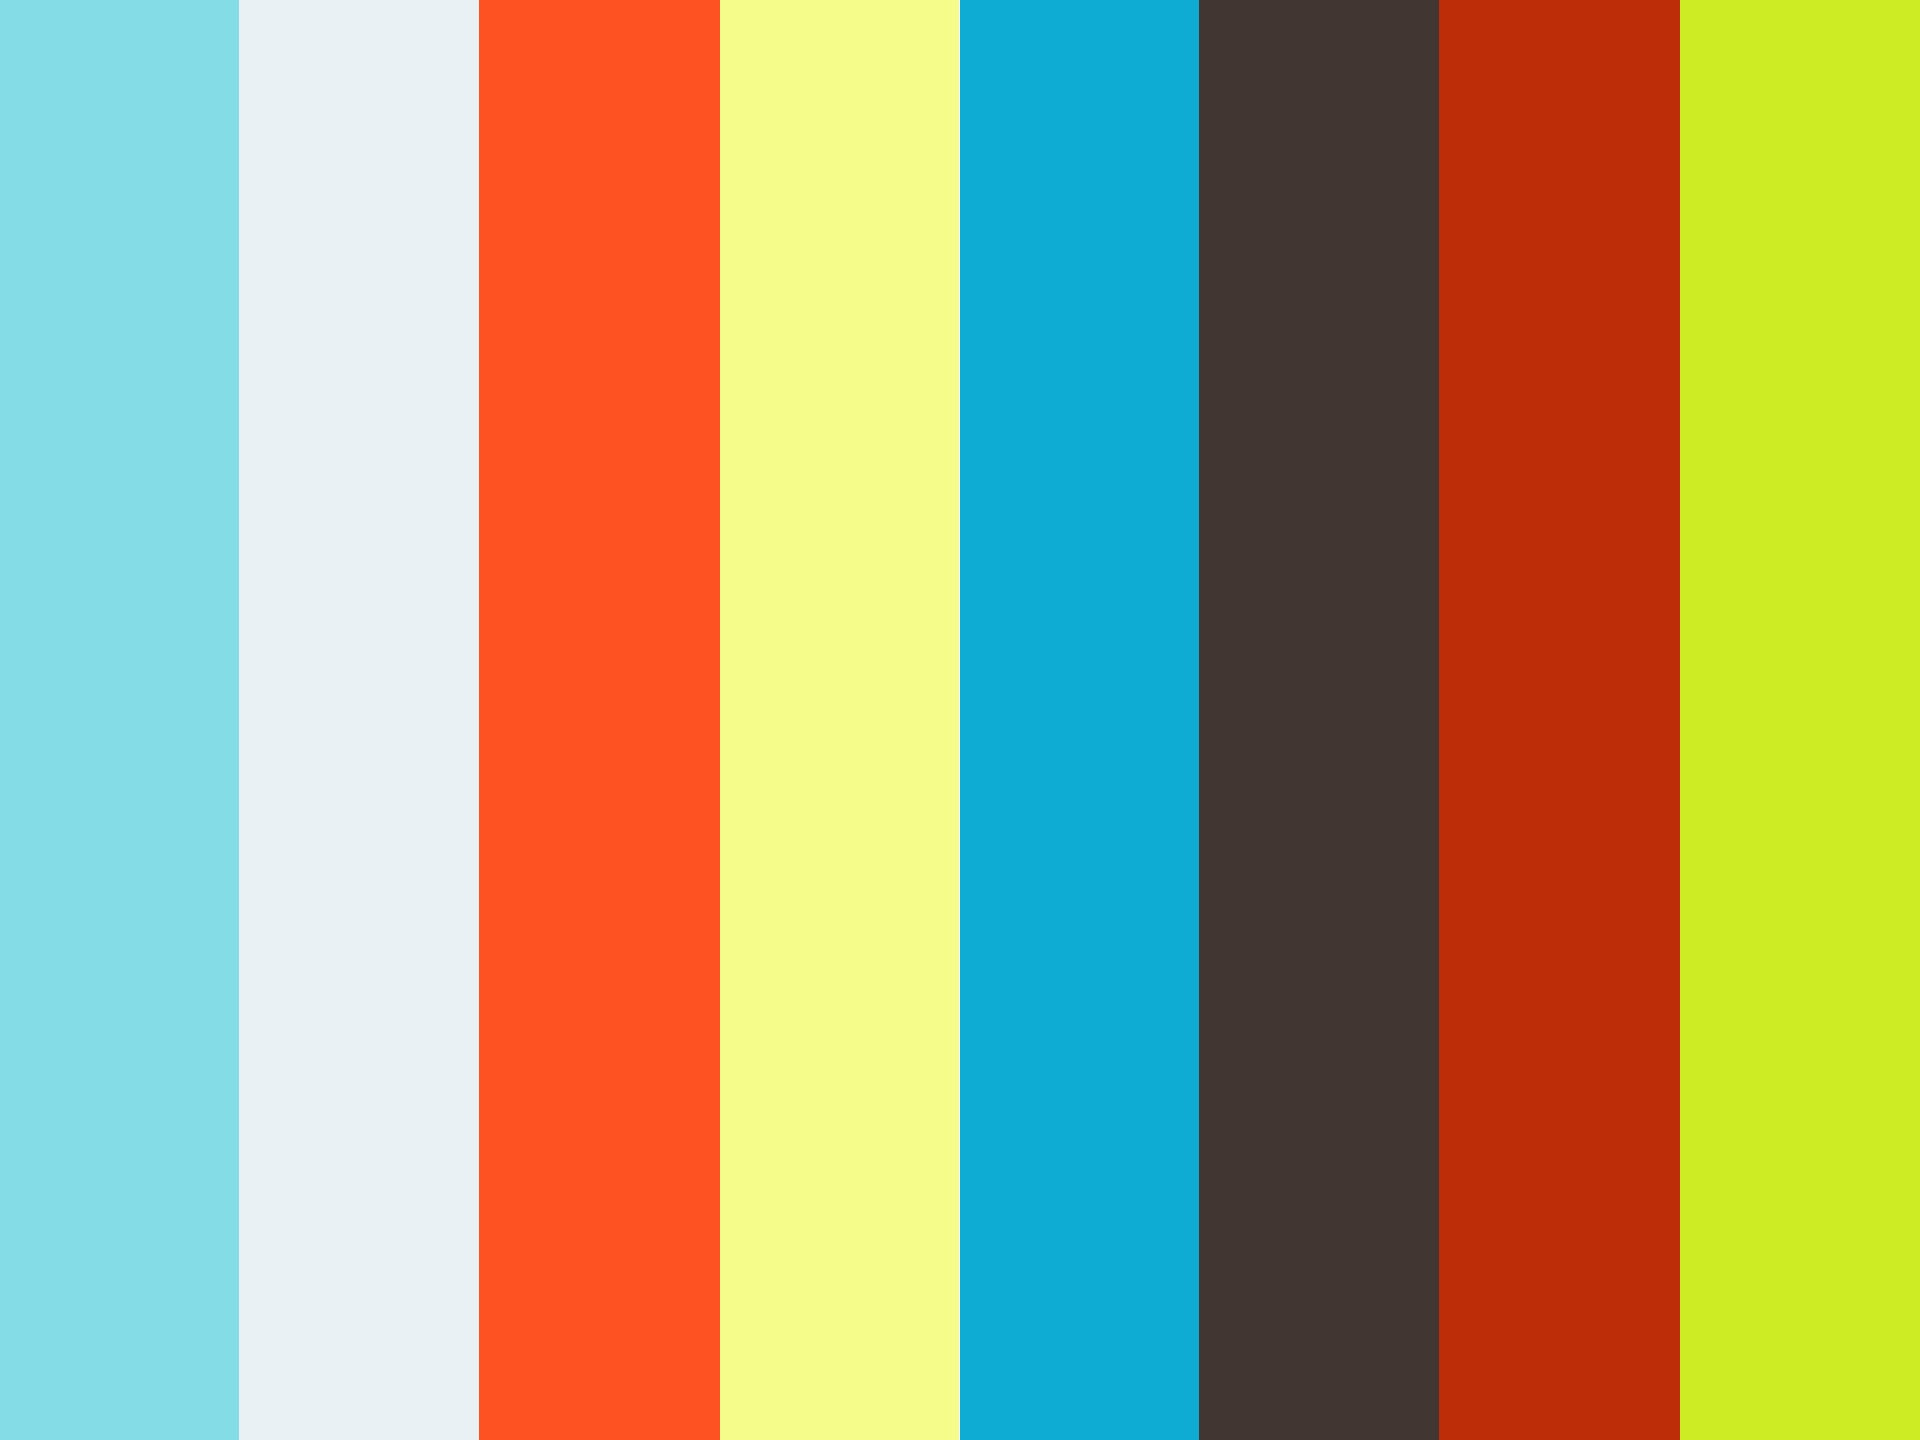 Pelvic Sepsis after Ileal Pouch-anal Anastomosis Adversely Affects LT Function of Pouch and QOL 2011